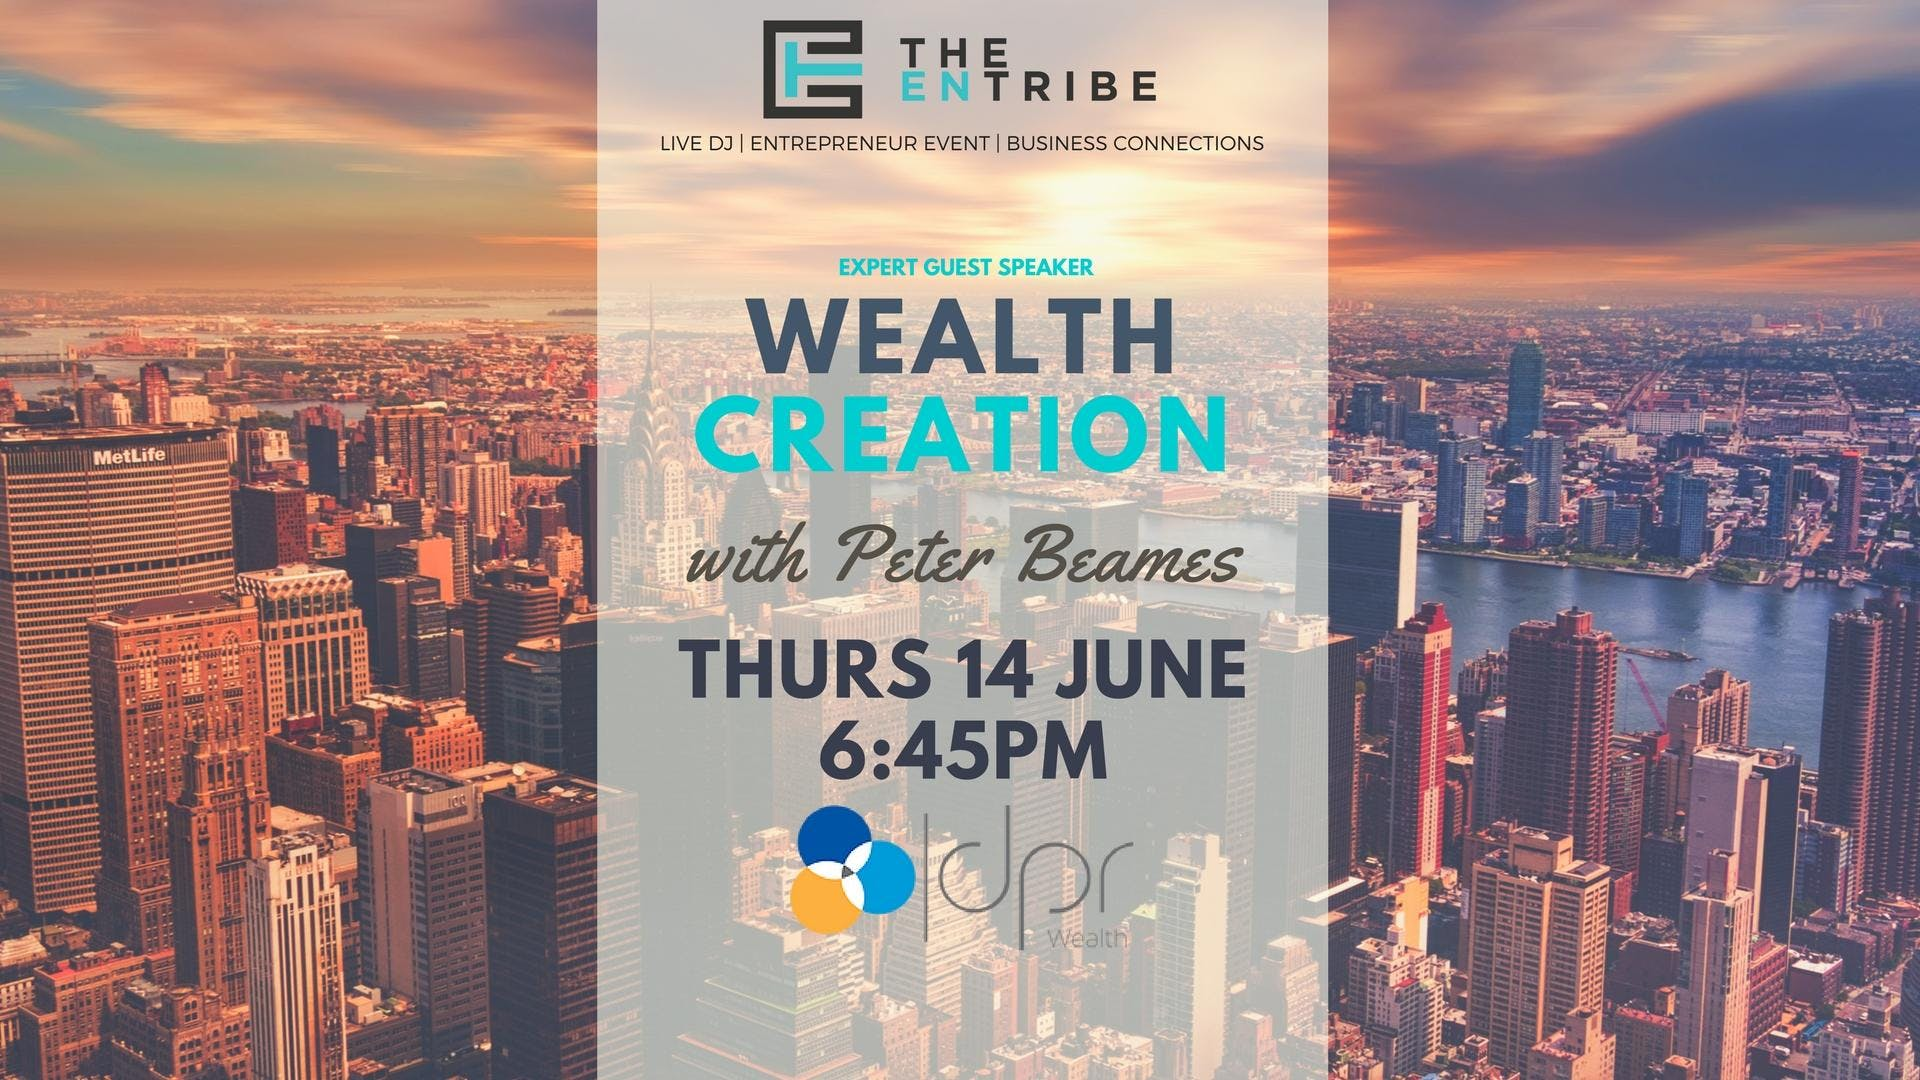 The EnTribe Connection Business Growth [Speaker Peter Beames Wealth Expert]